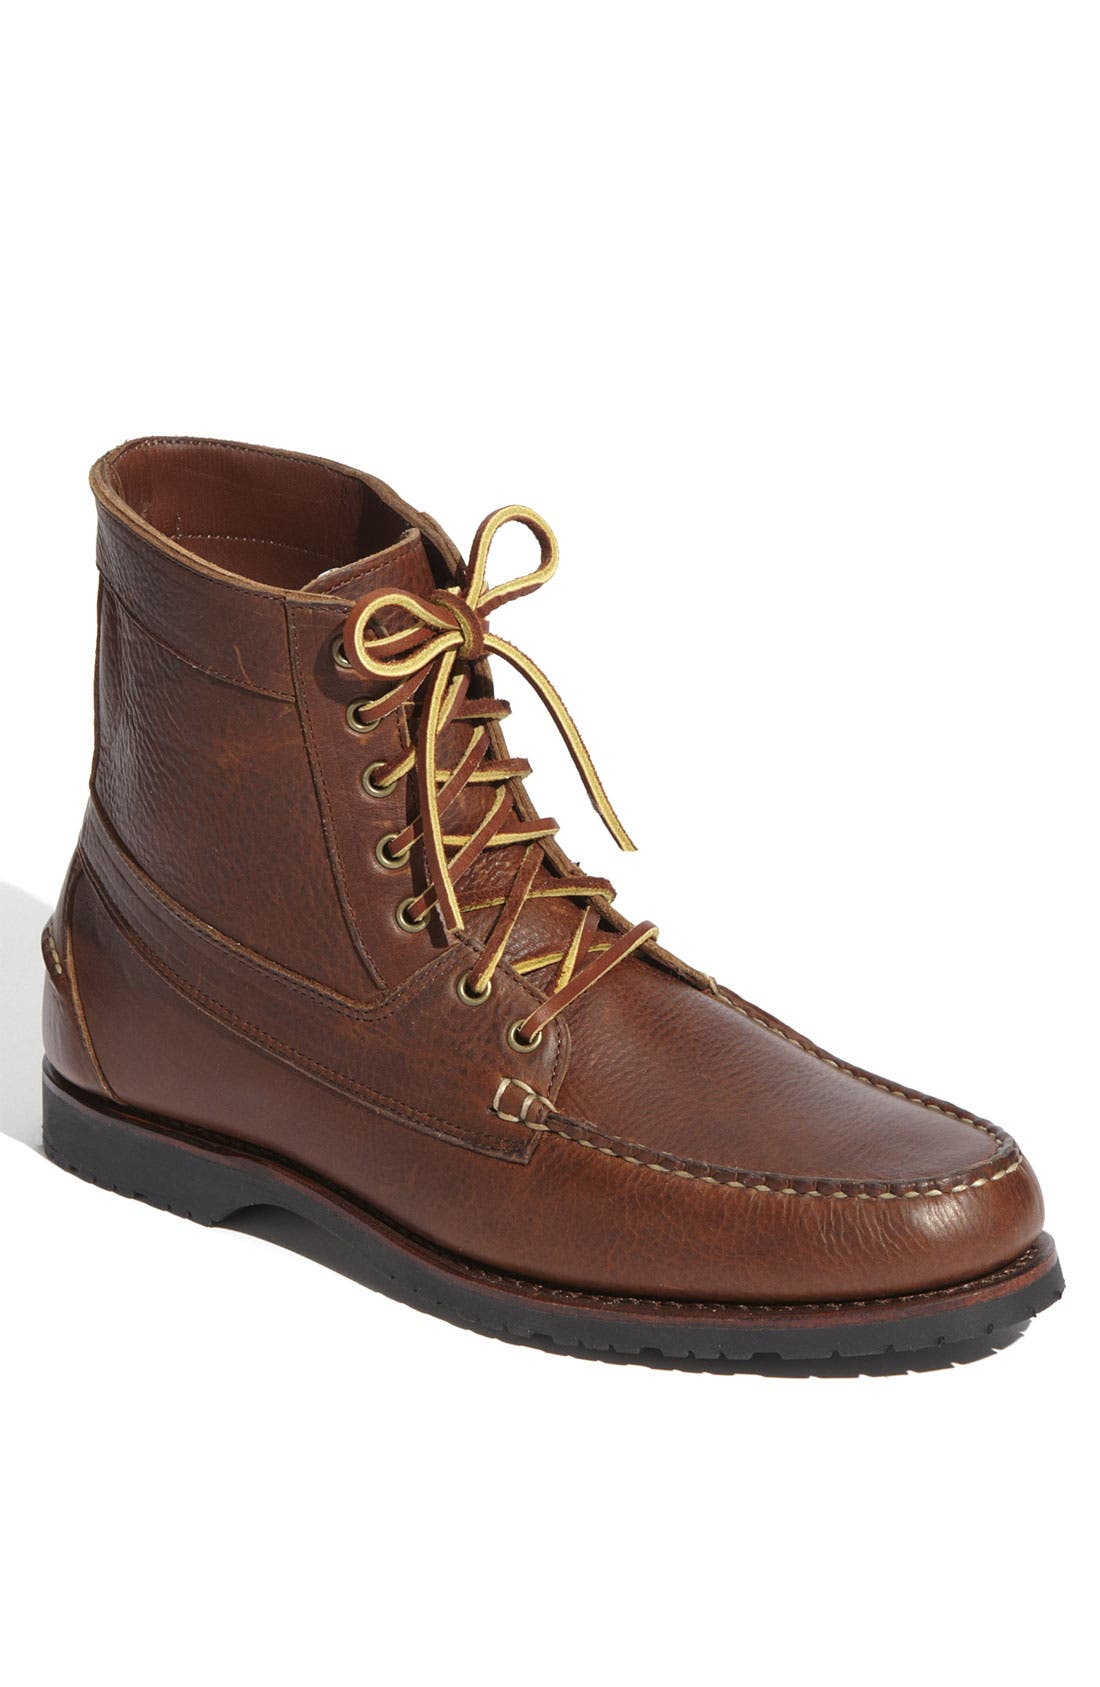 Main Image - Allen Edmonds 'Yuma' Boot